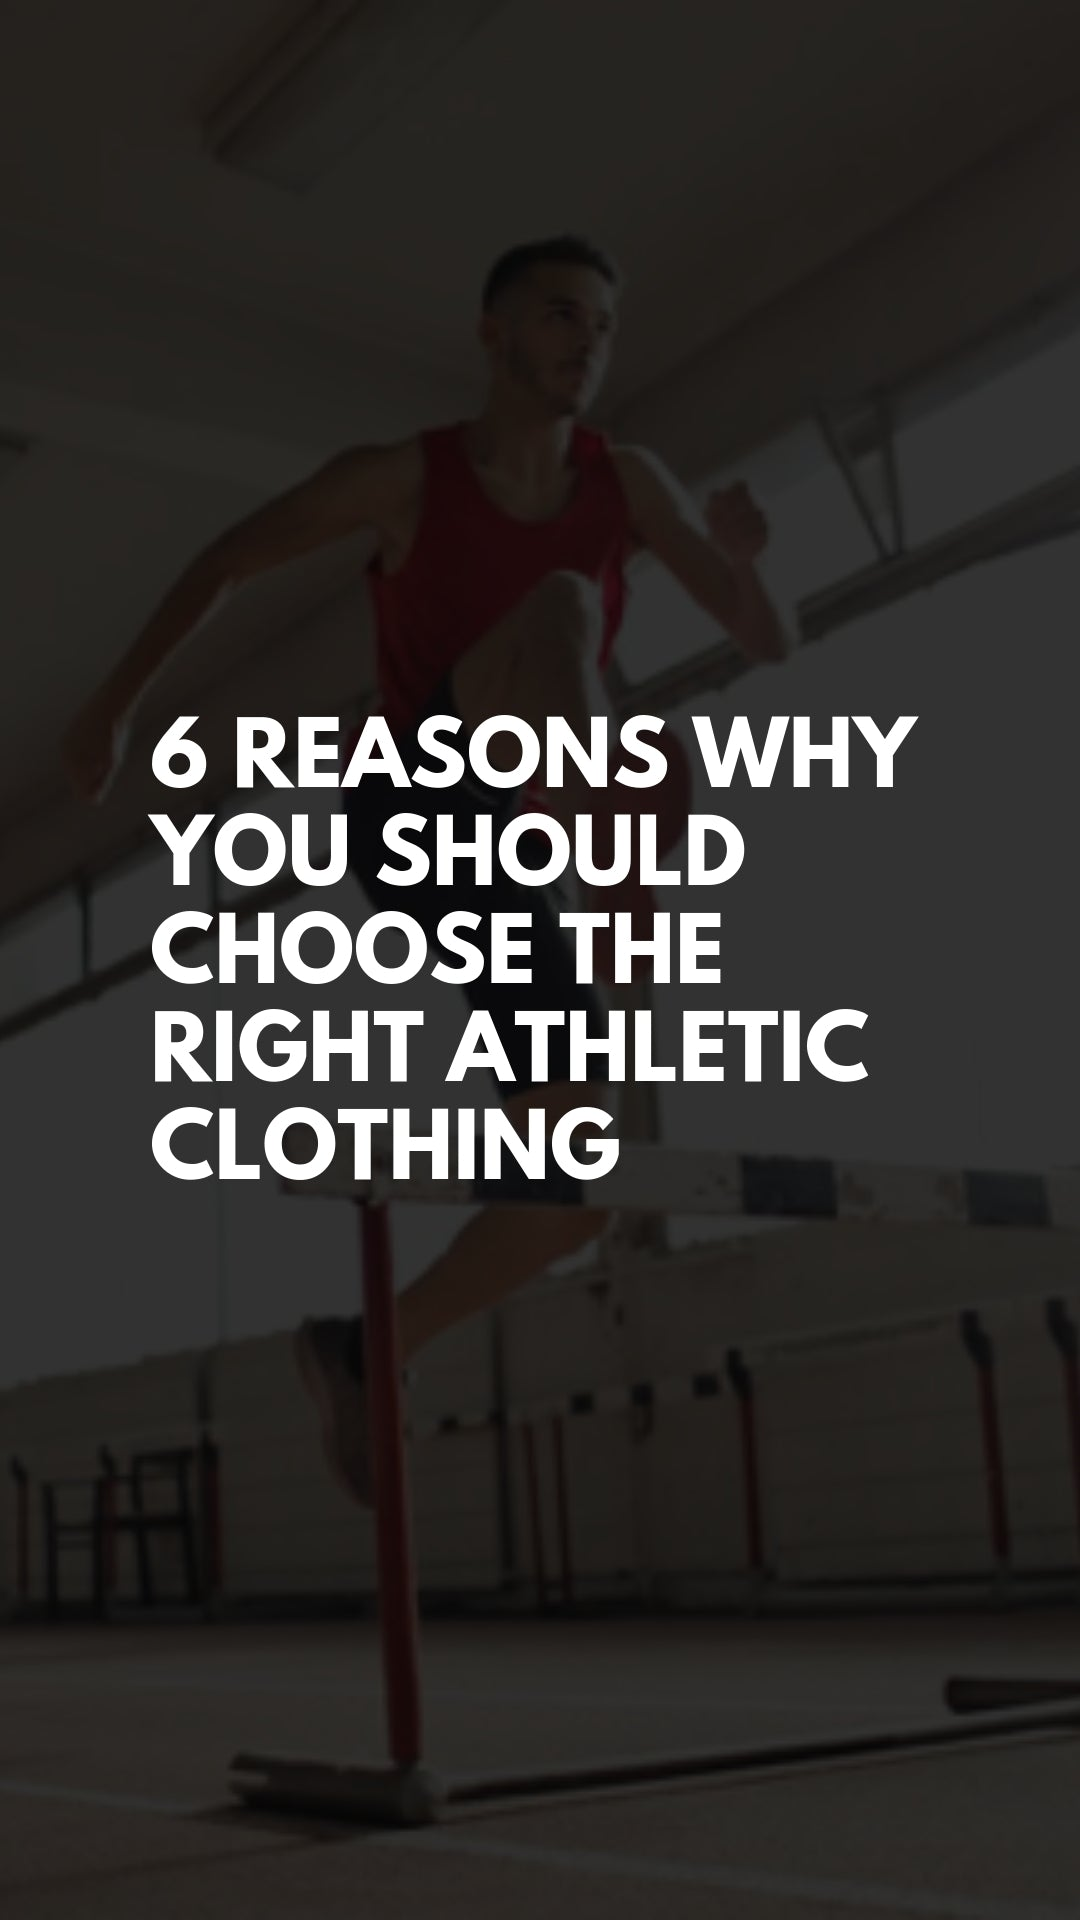 6 Reasons Why You Should Choose the Right Athletic Clothing